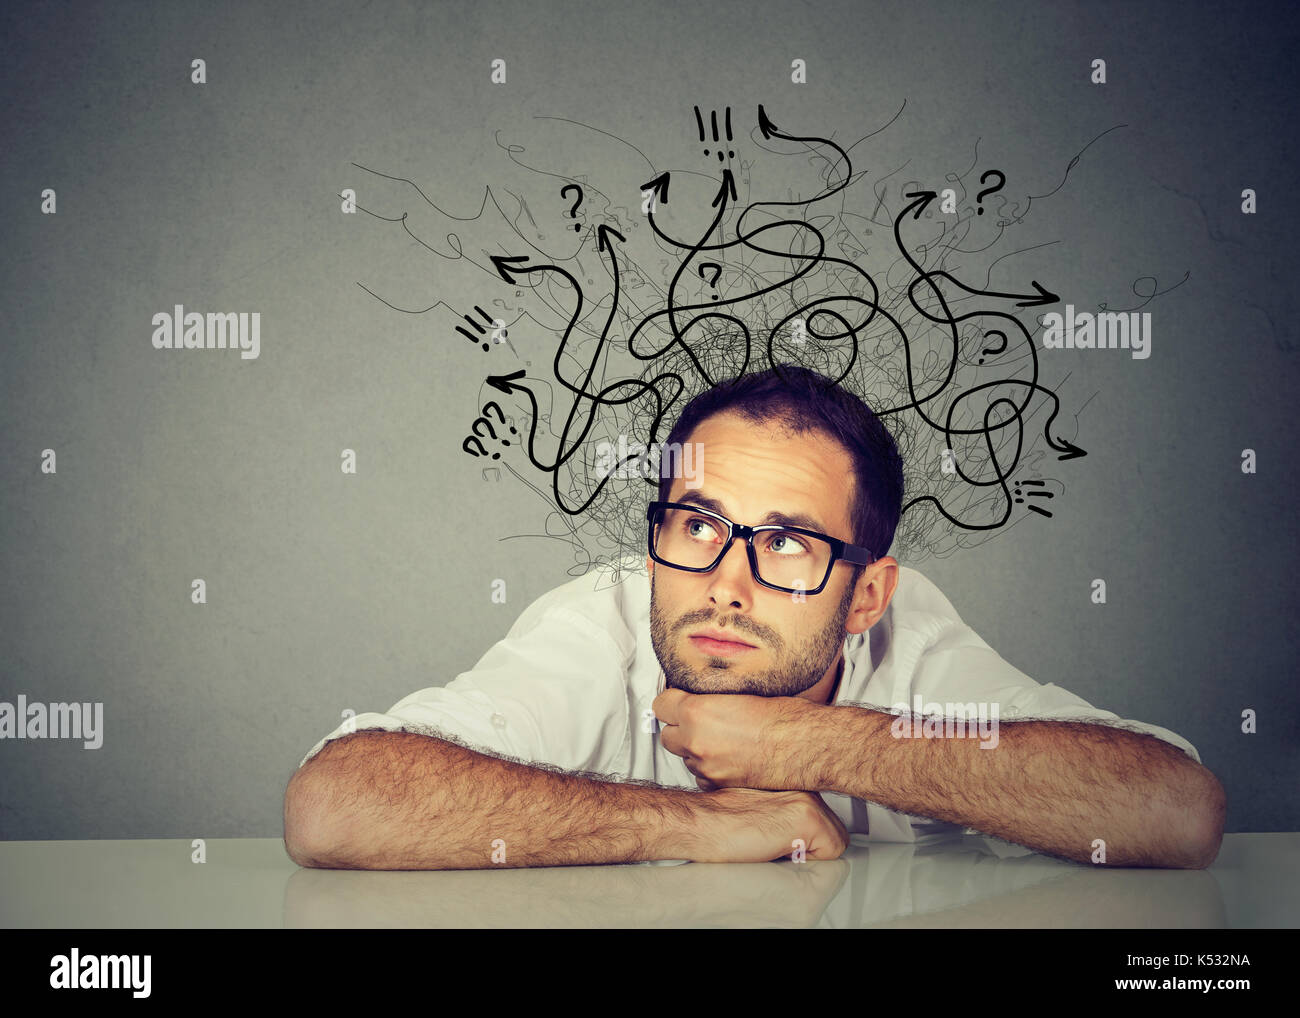 Business man thinking contemplating a solution - Stock Image